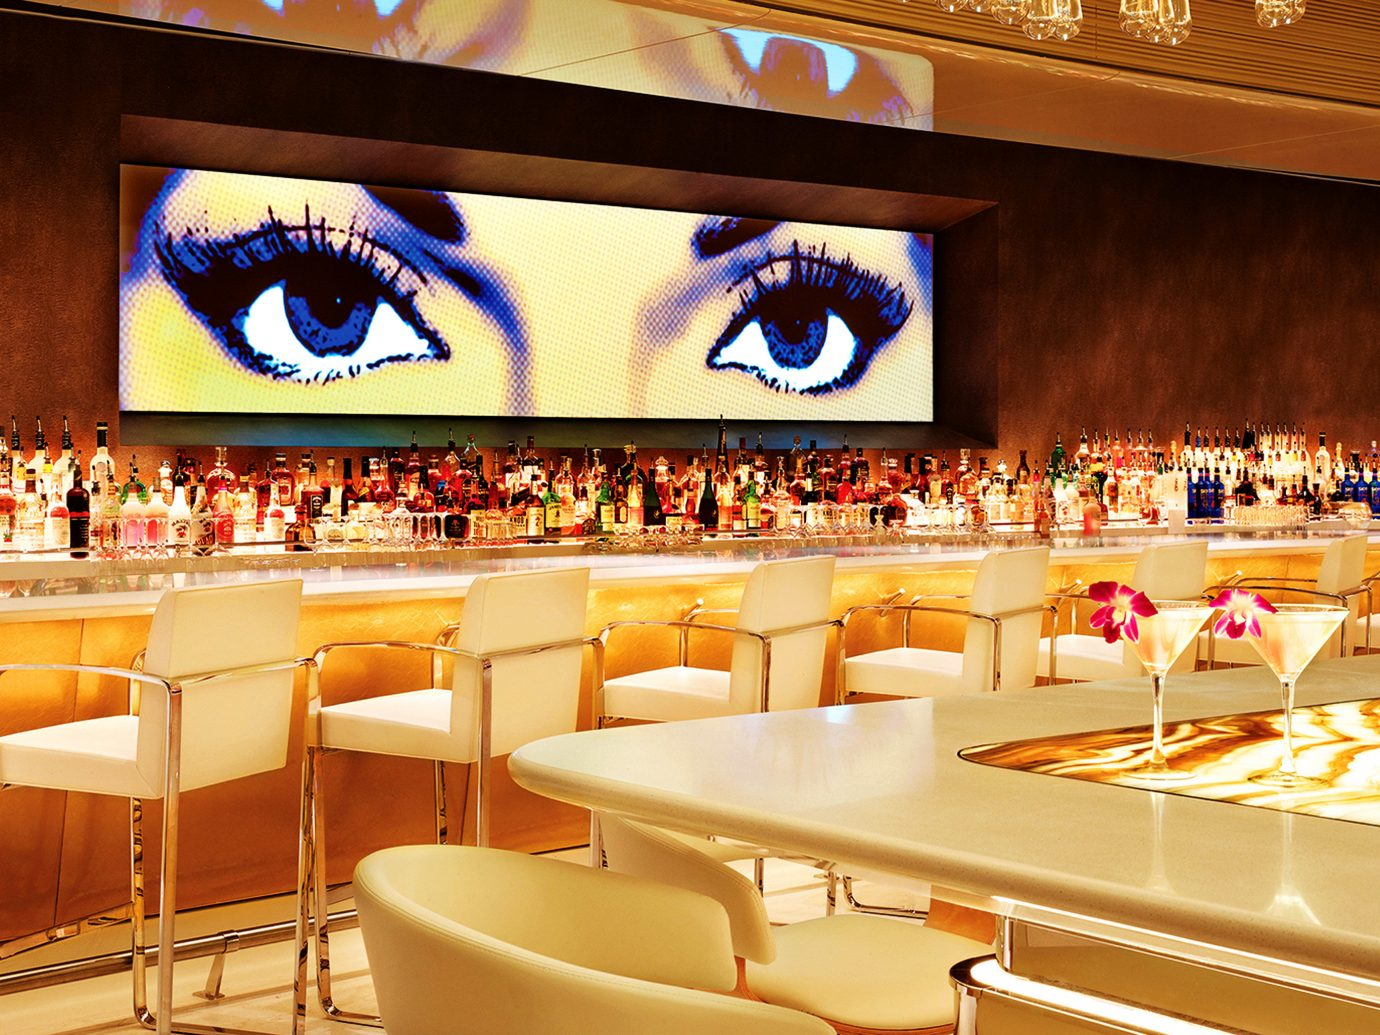 Bar Budget Casino City Drink Entertainment Luxury table indoor function hall meal restaurant interior design conference hall auditorium ballroom